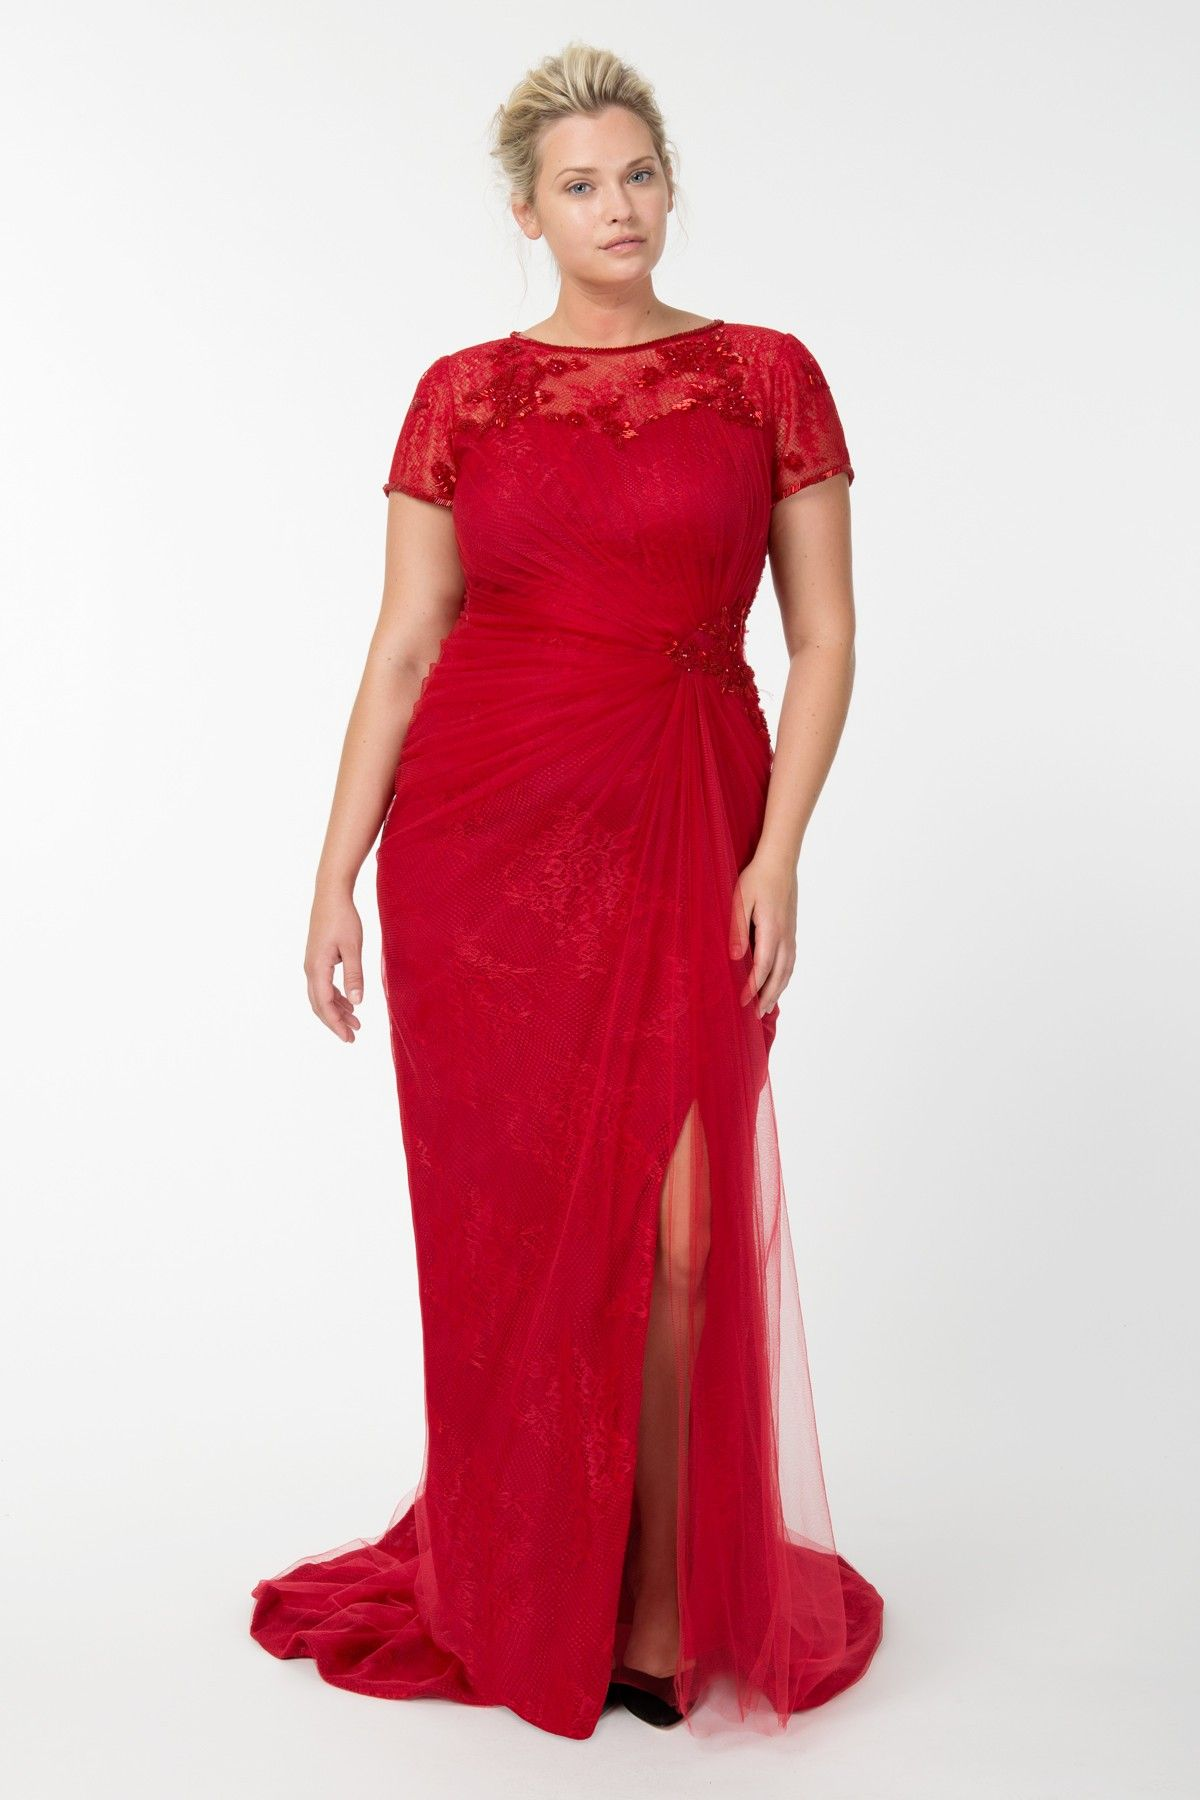 Red Plus Size Evening Dresses – Fashion dresses